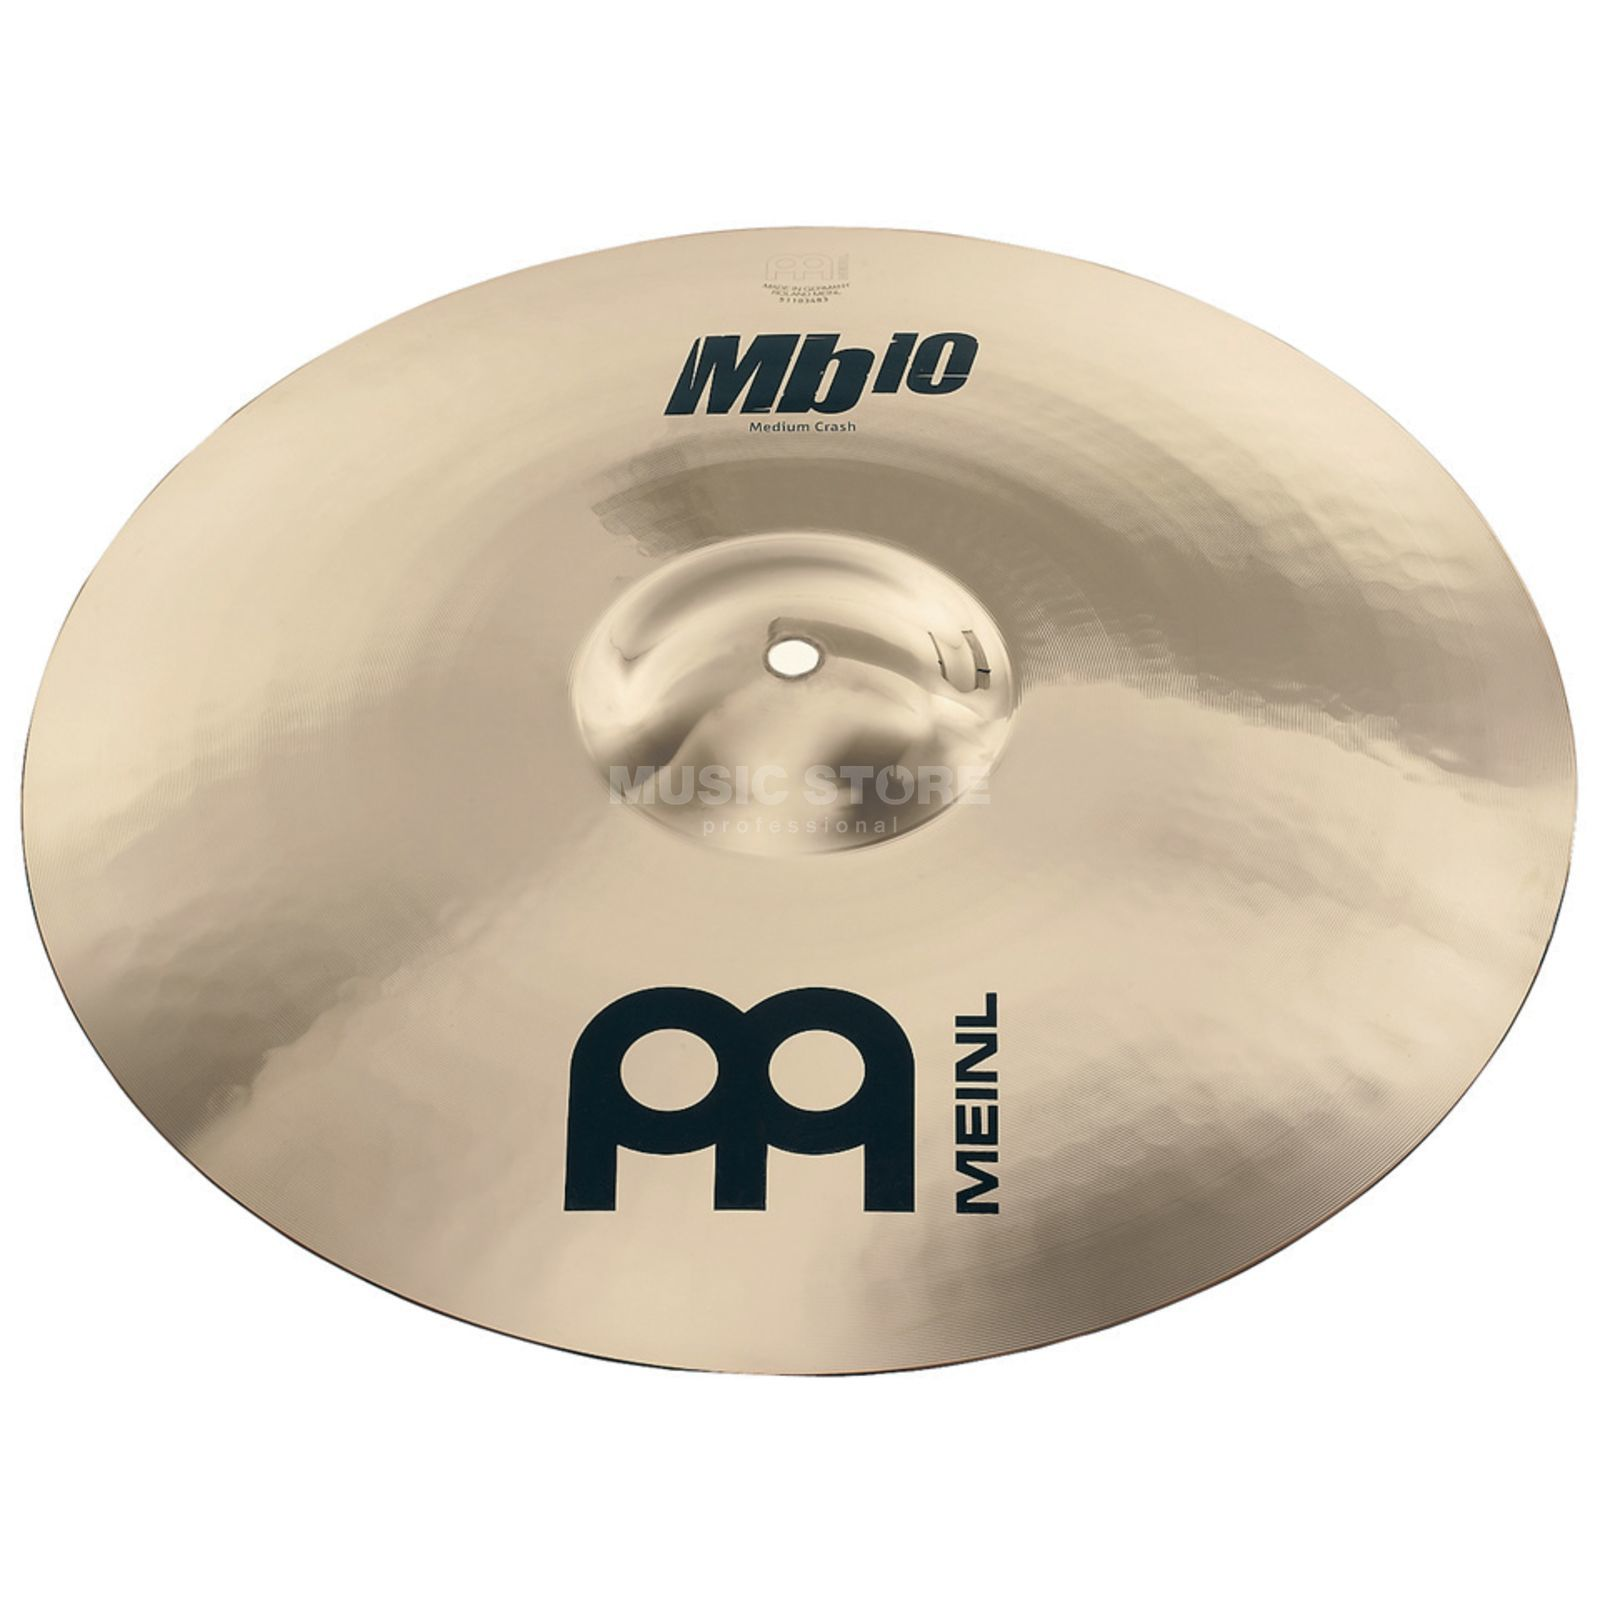 "Meinl MB10 Medium Crash 16"" MB10-16MC-B, Brilliant Finish Imagen del producto"